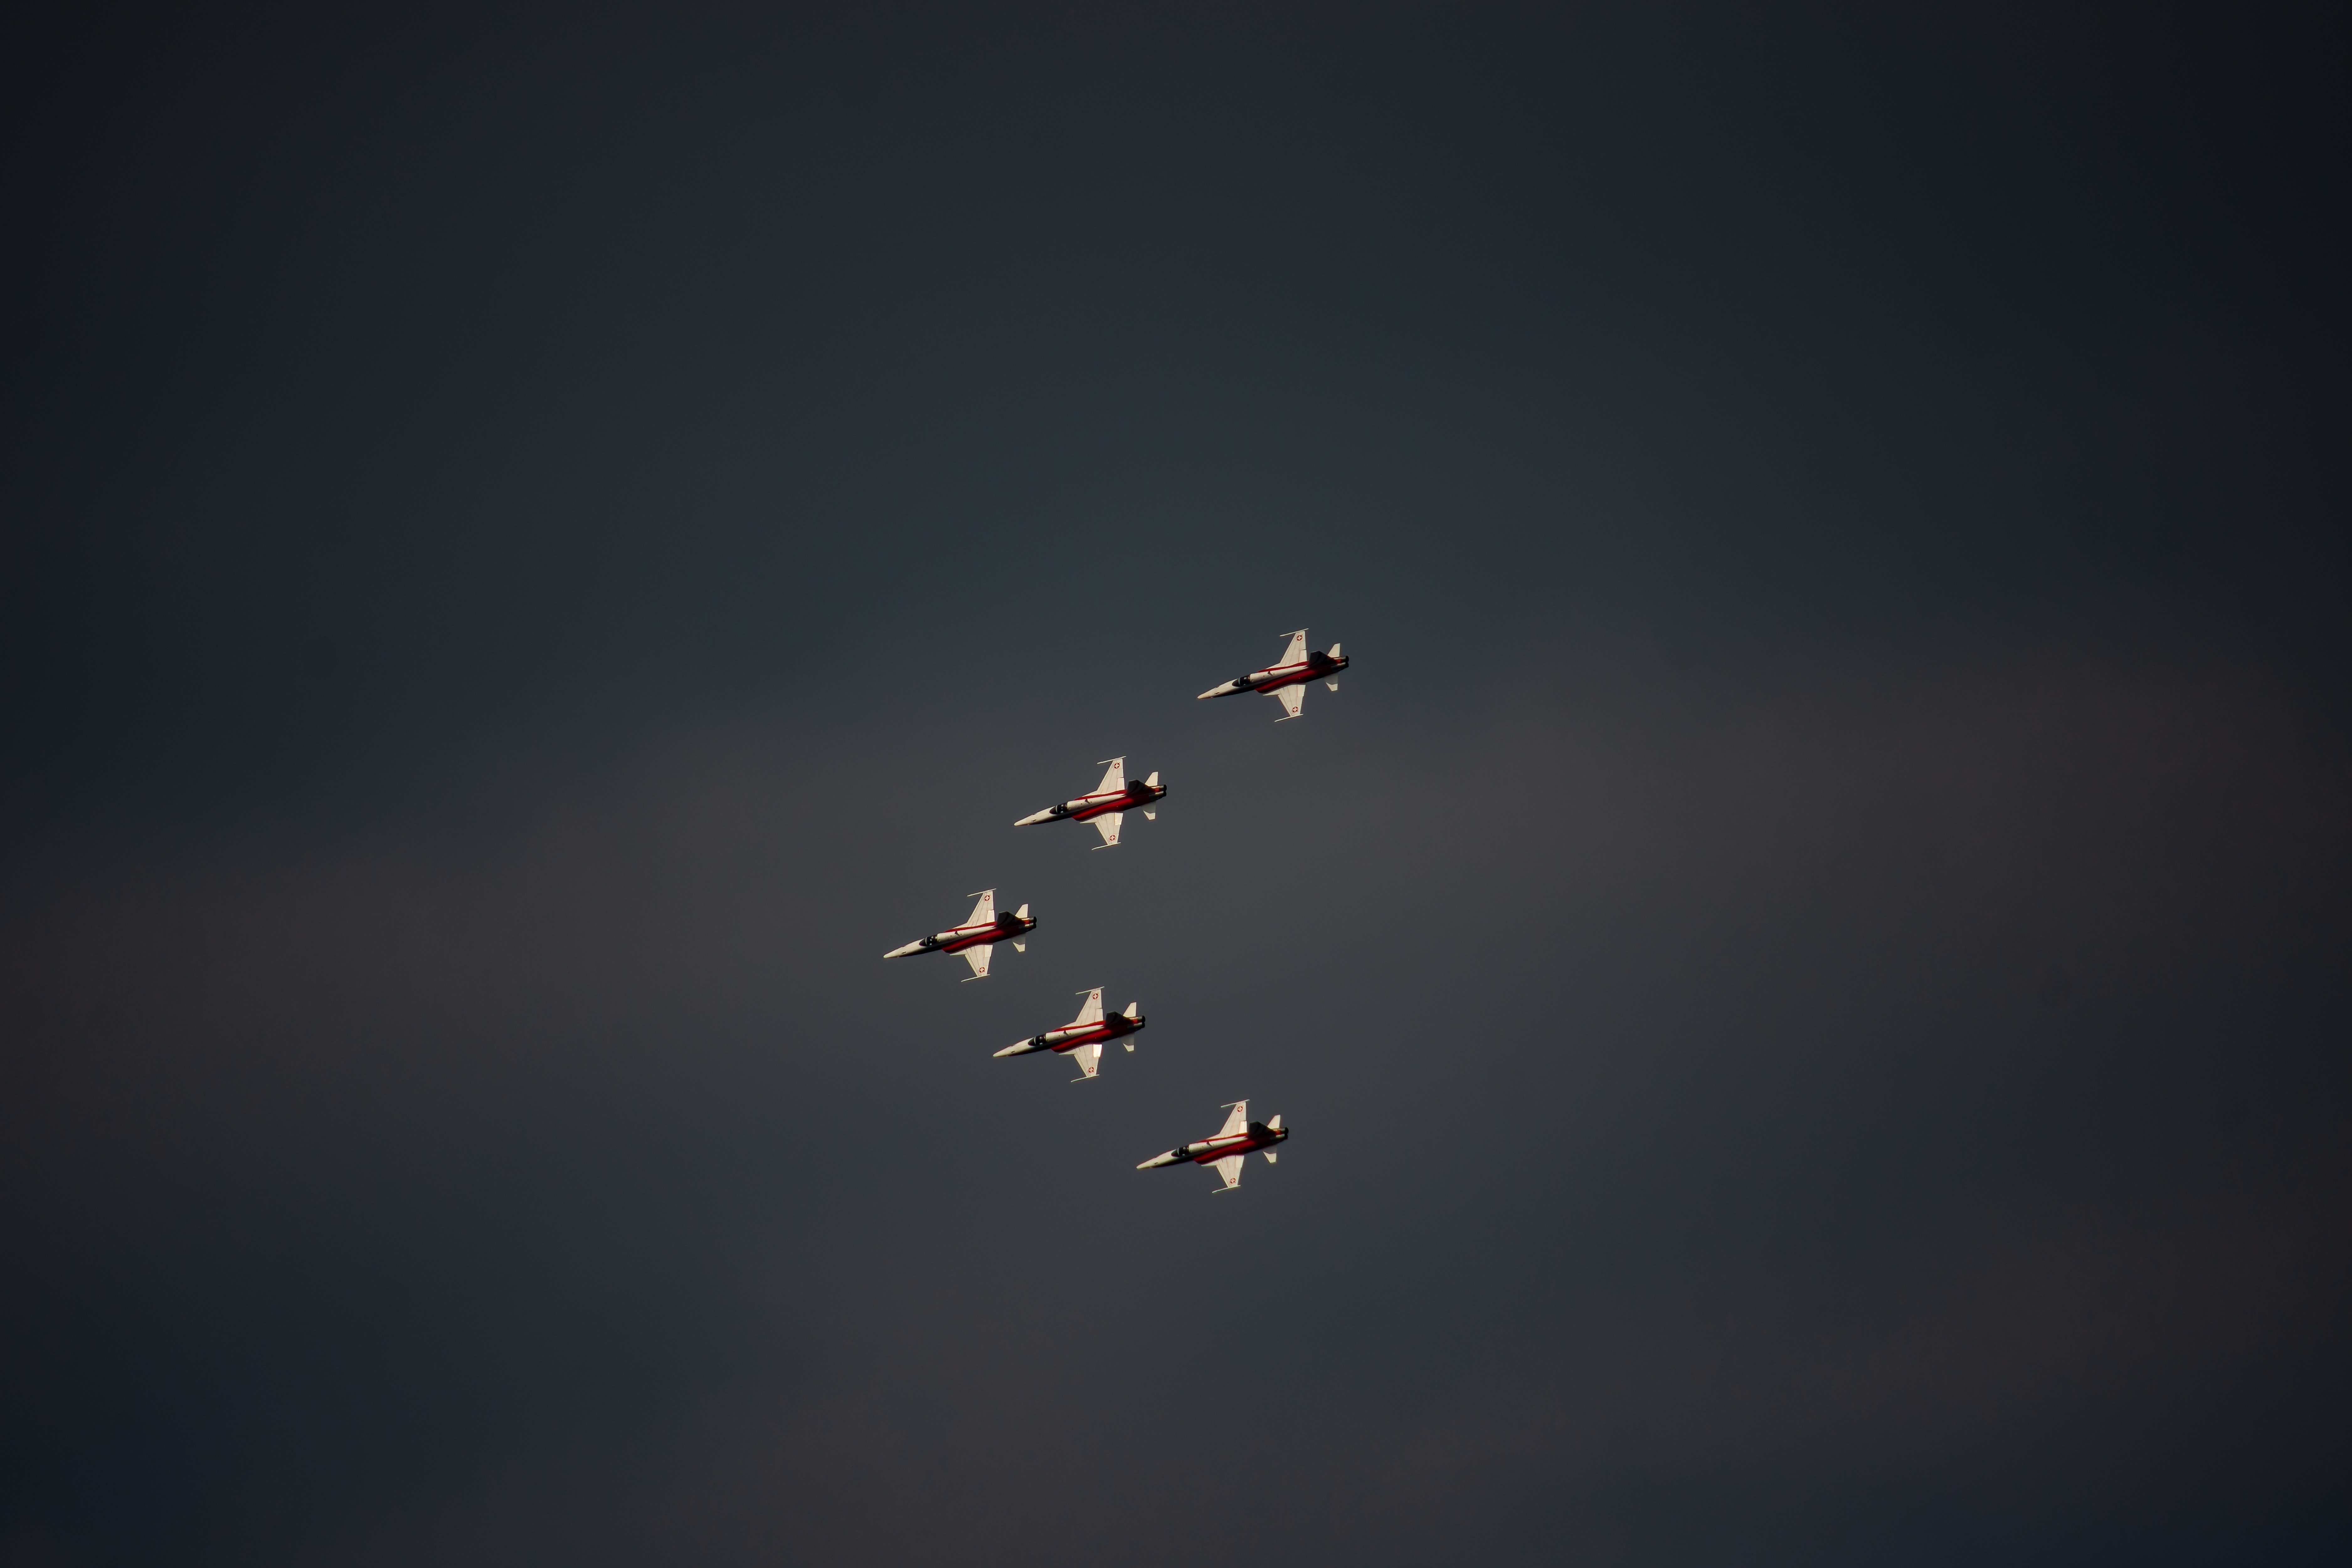 five airplanes having a formation